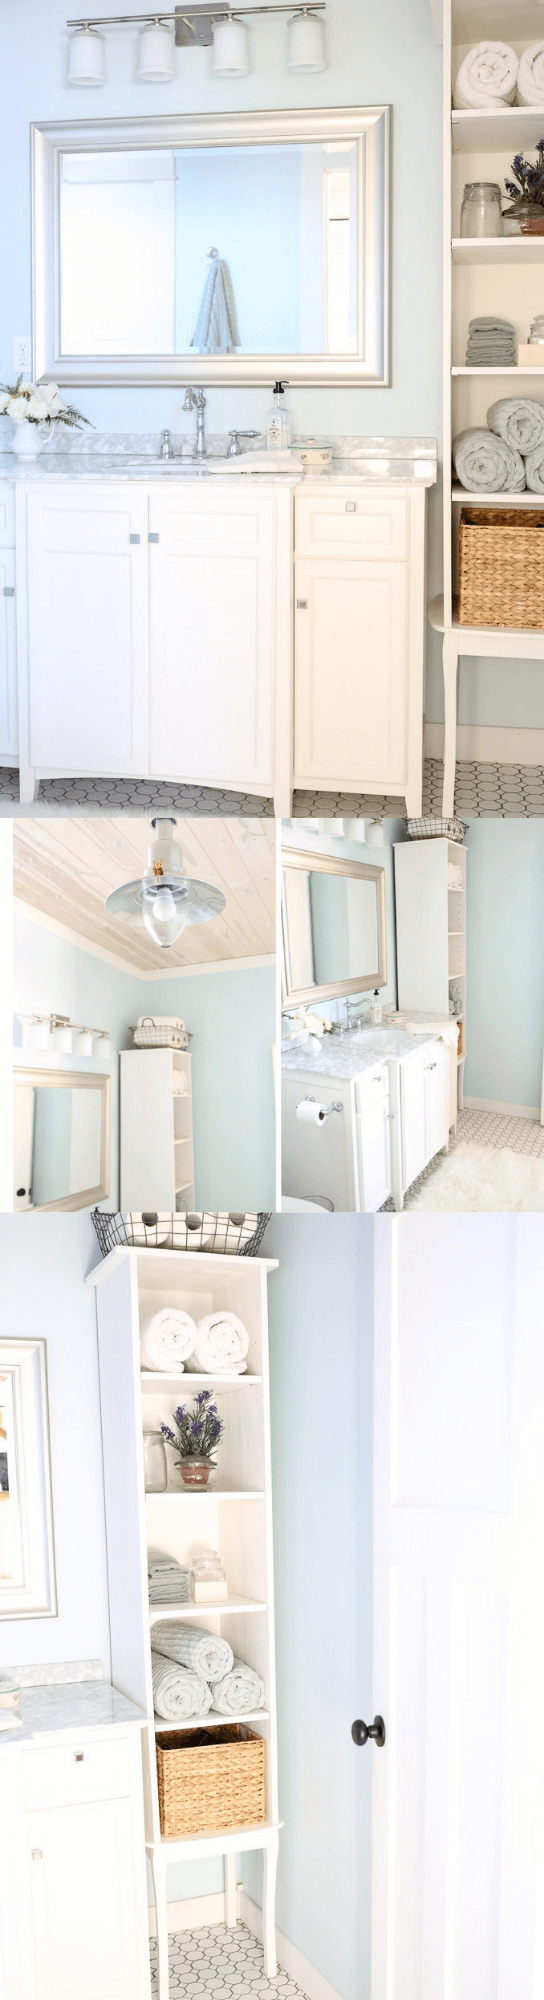 Charming Cottage Style Bathroom Ideas Marble countertop, mirror and storage